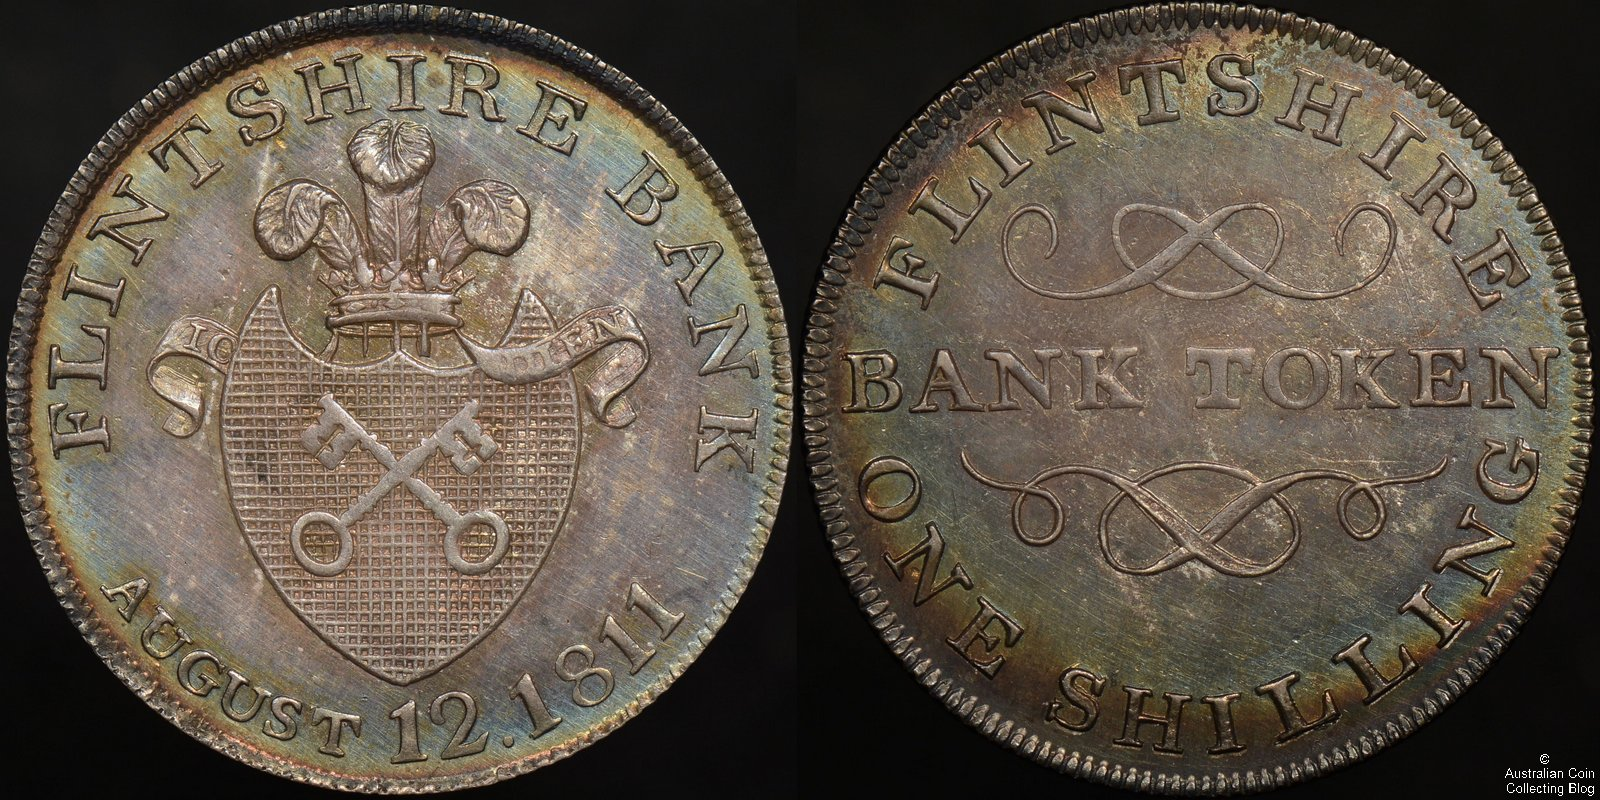 Great Britain 1811 Flintshire 1 Shilling Bank Token